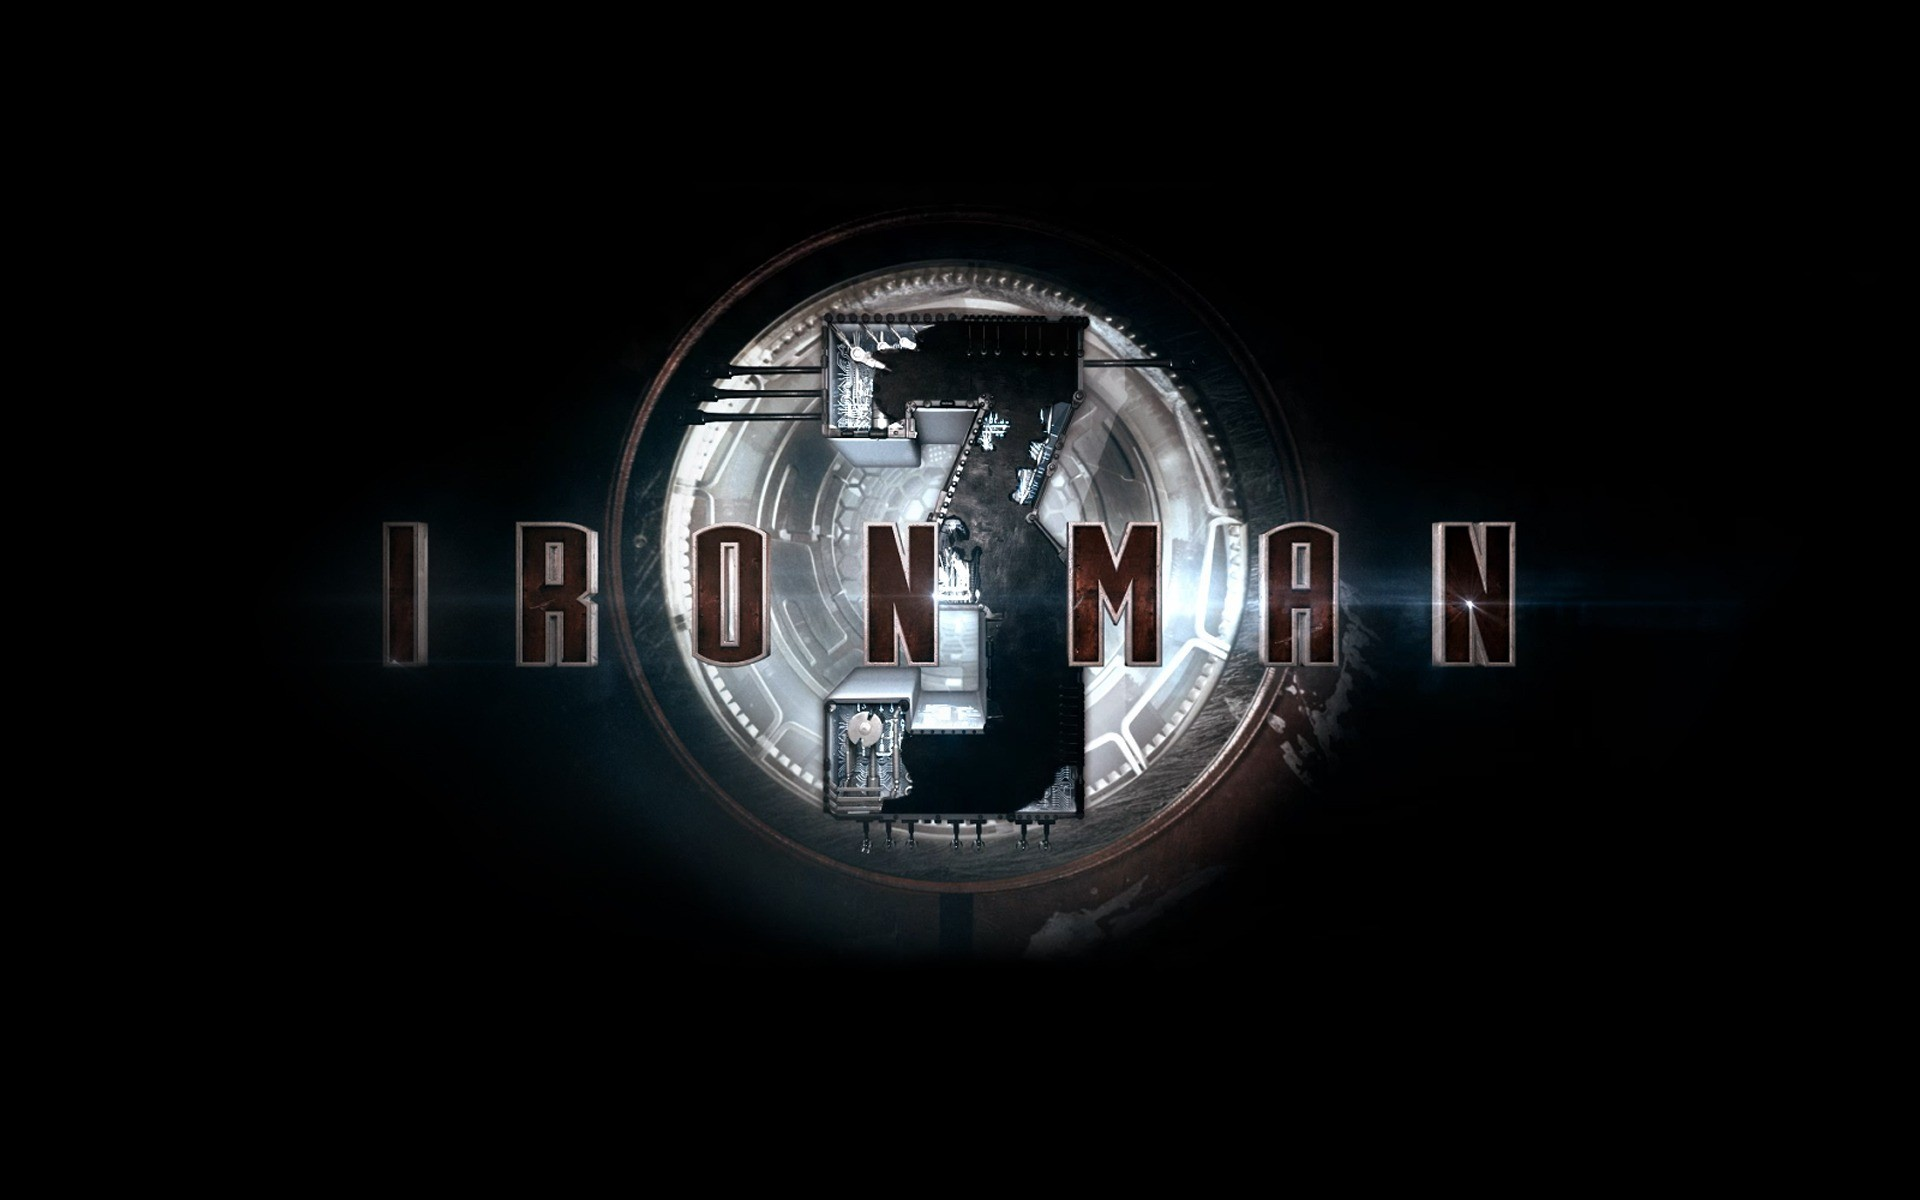 Iron Man 3 Wide Hollywood Movie Wallpaper Hd : 1920x1200px HD Wallpapers  #783 ~ Ngewall